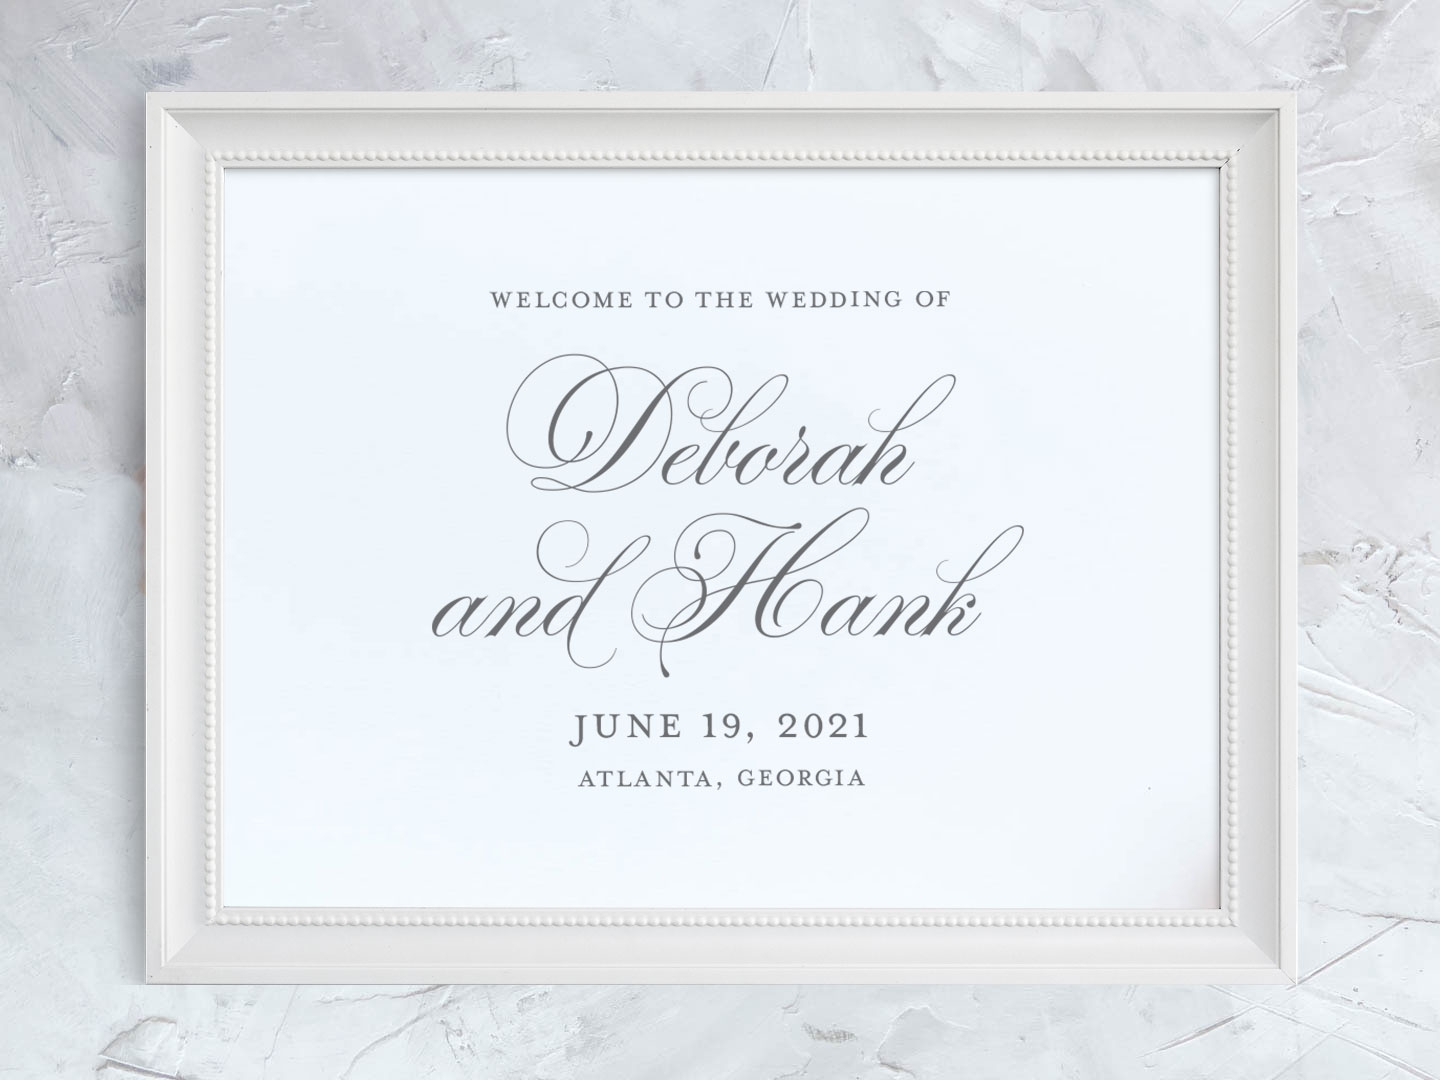 Wedding welcome sign with elegant script font.